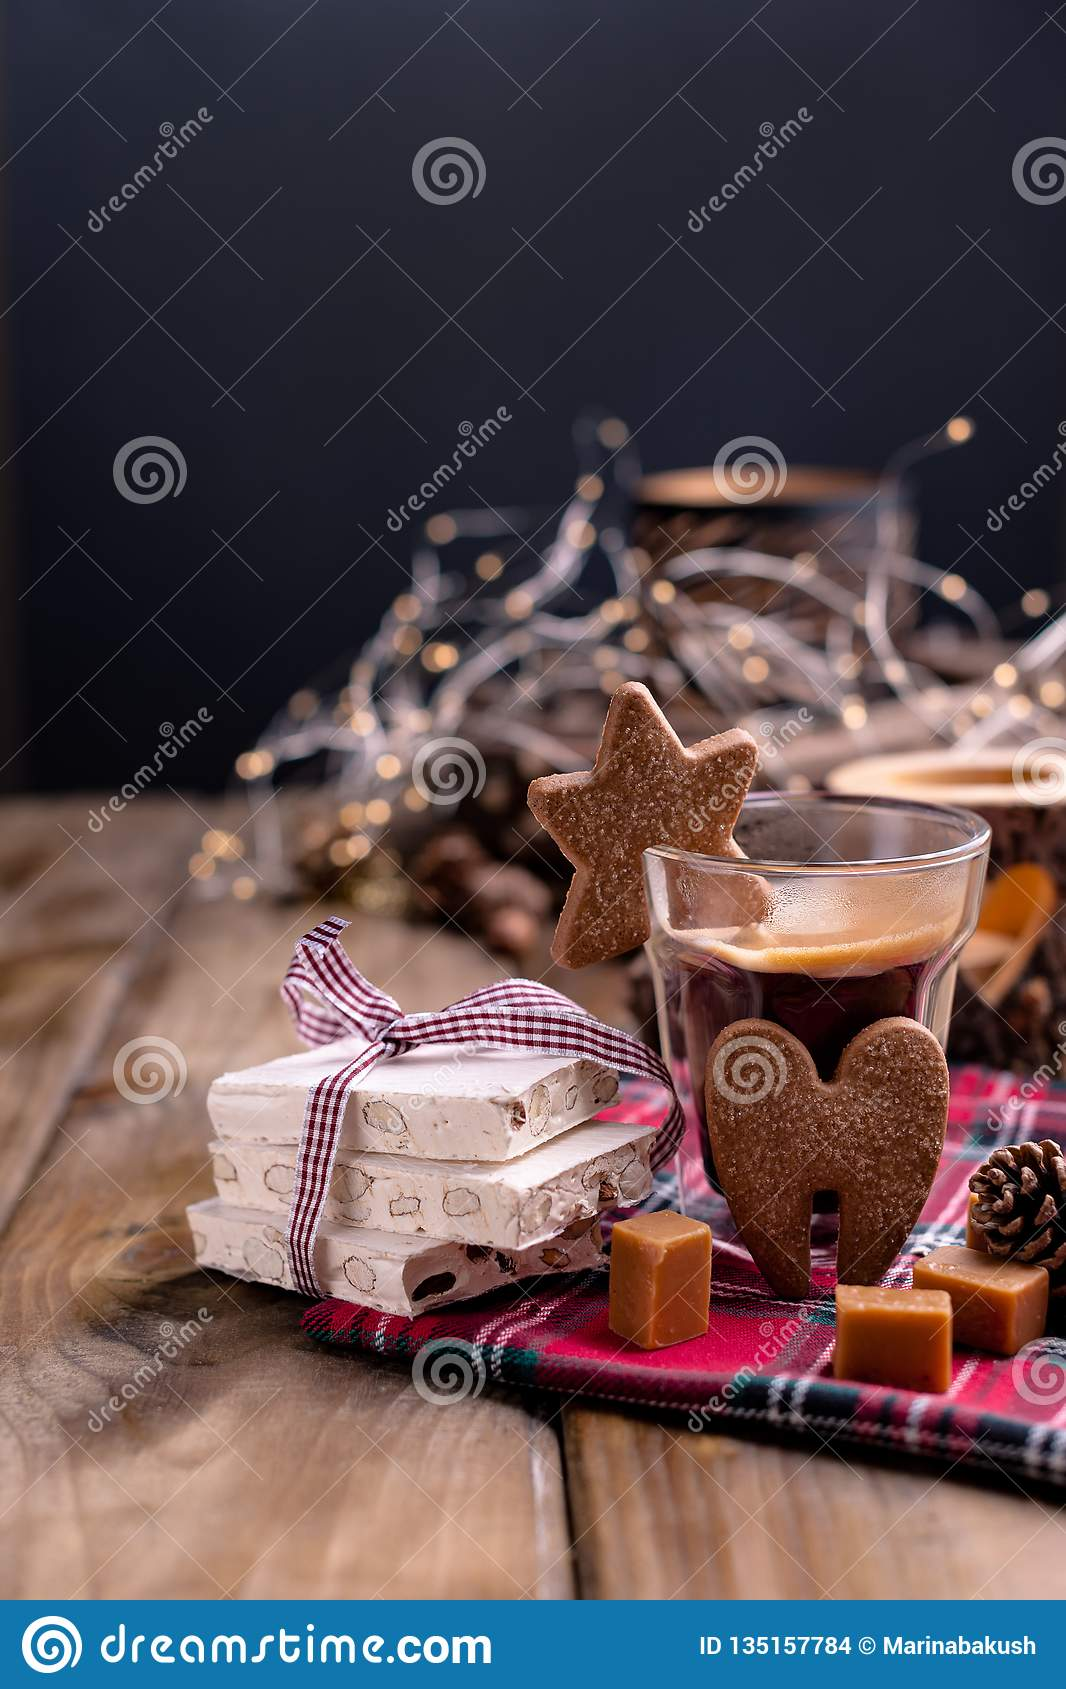 Fresh aromatic coffee and Italian Christmas sweets. Nougat with almonds, karemelnye sweets, ginger cookies and hot drink. Candles